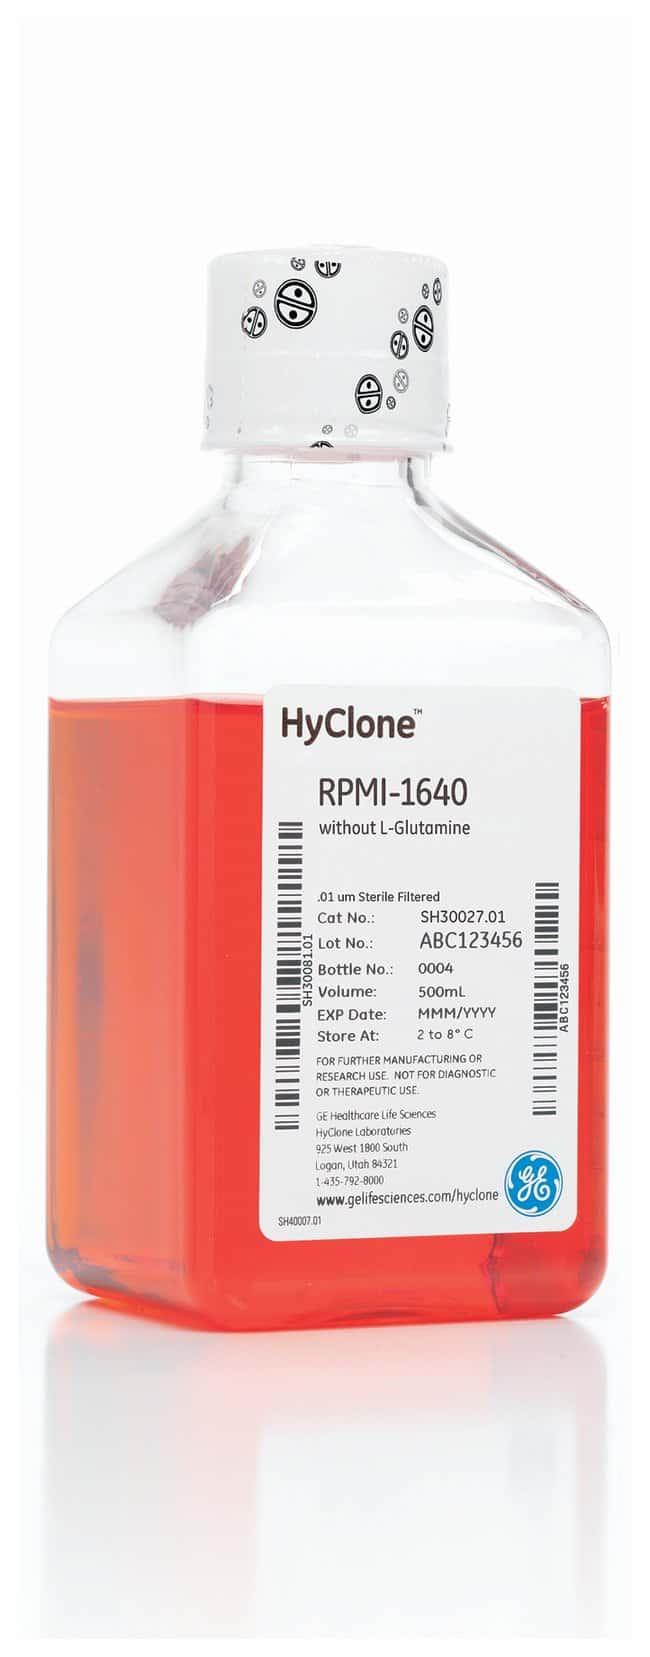 Cytiva (Formerly GE Healthcare Life Sciences) HyClone™ RPMI 1640 Media